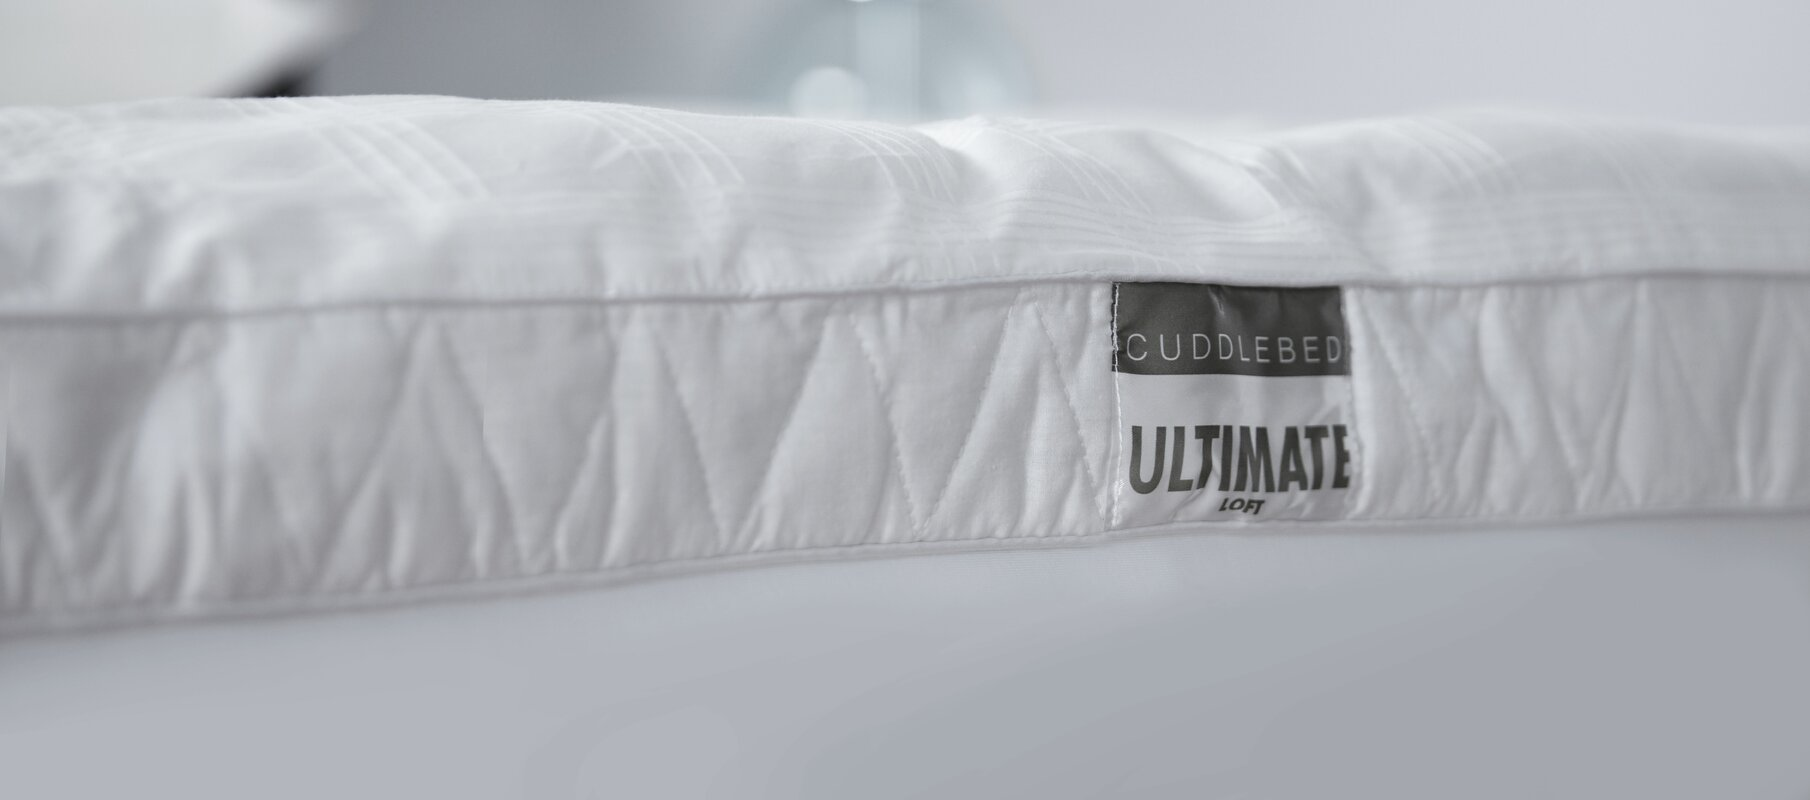 Simmons Beautyrest Ultimate Cuddlebed 174 2 5 Quot Mattress